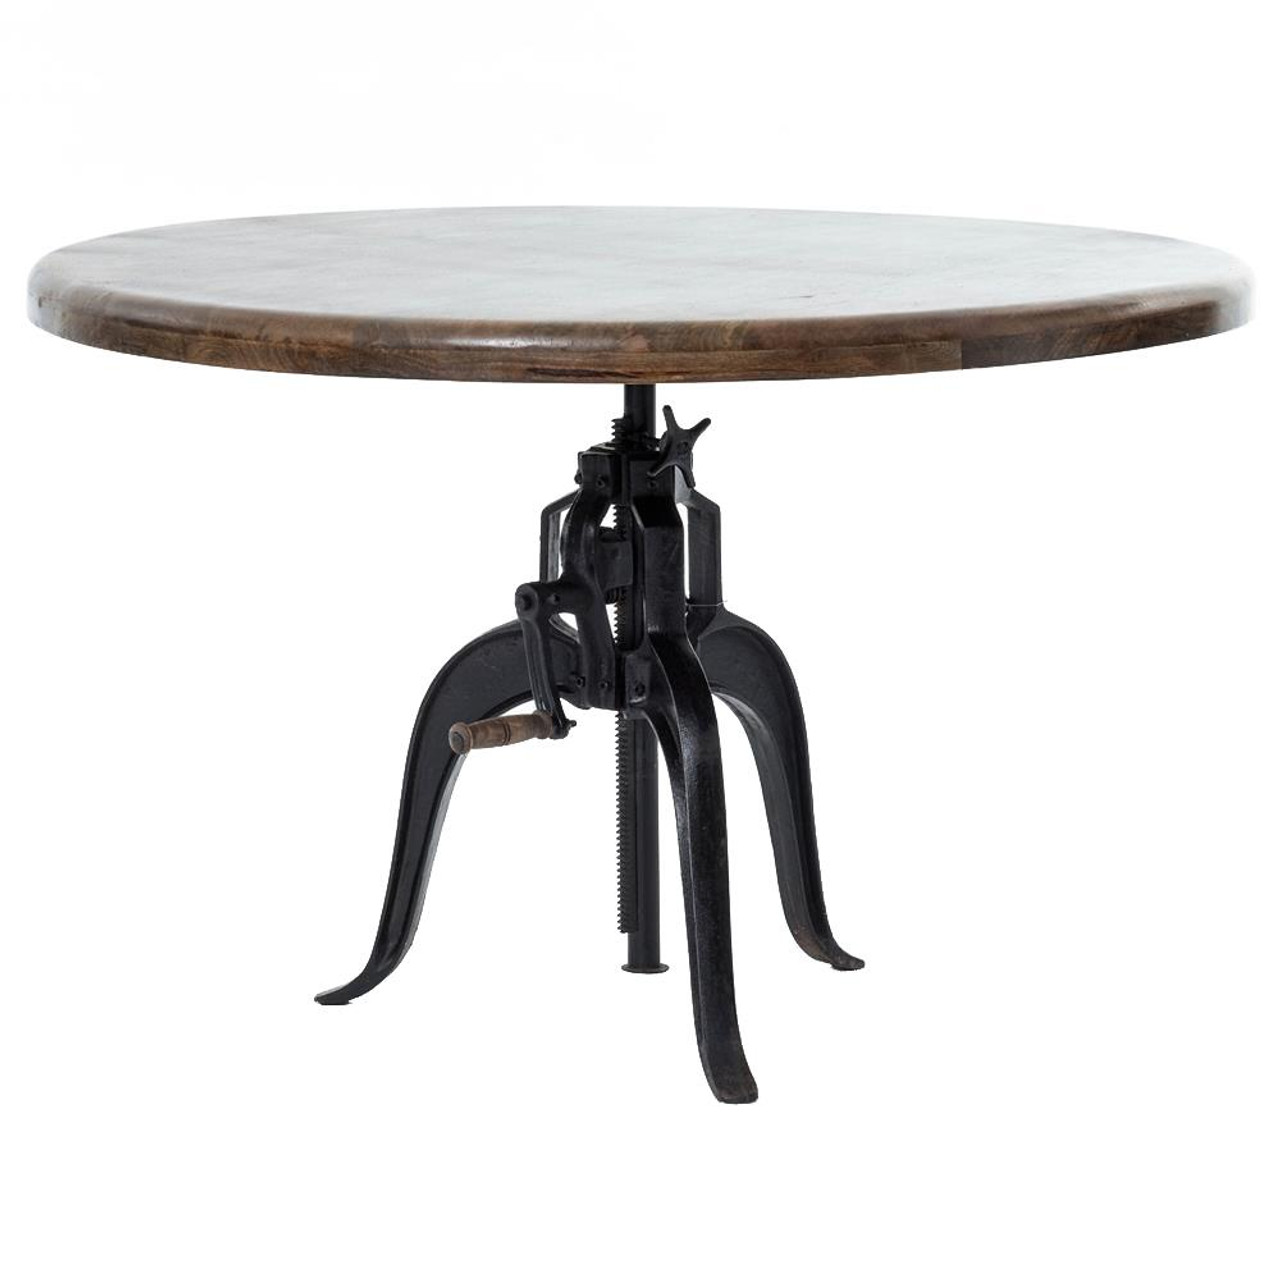 Industrial Cast Iron Wood Crank Dining Table 48